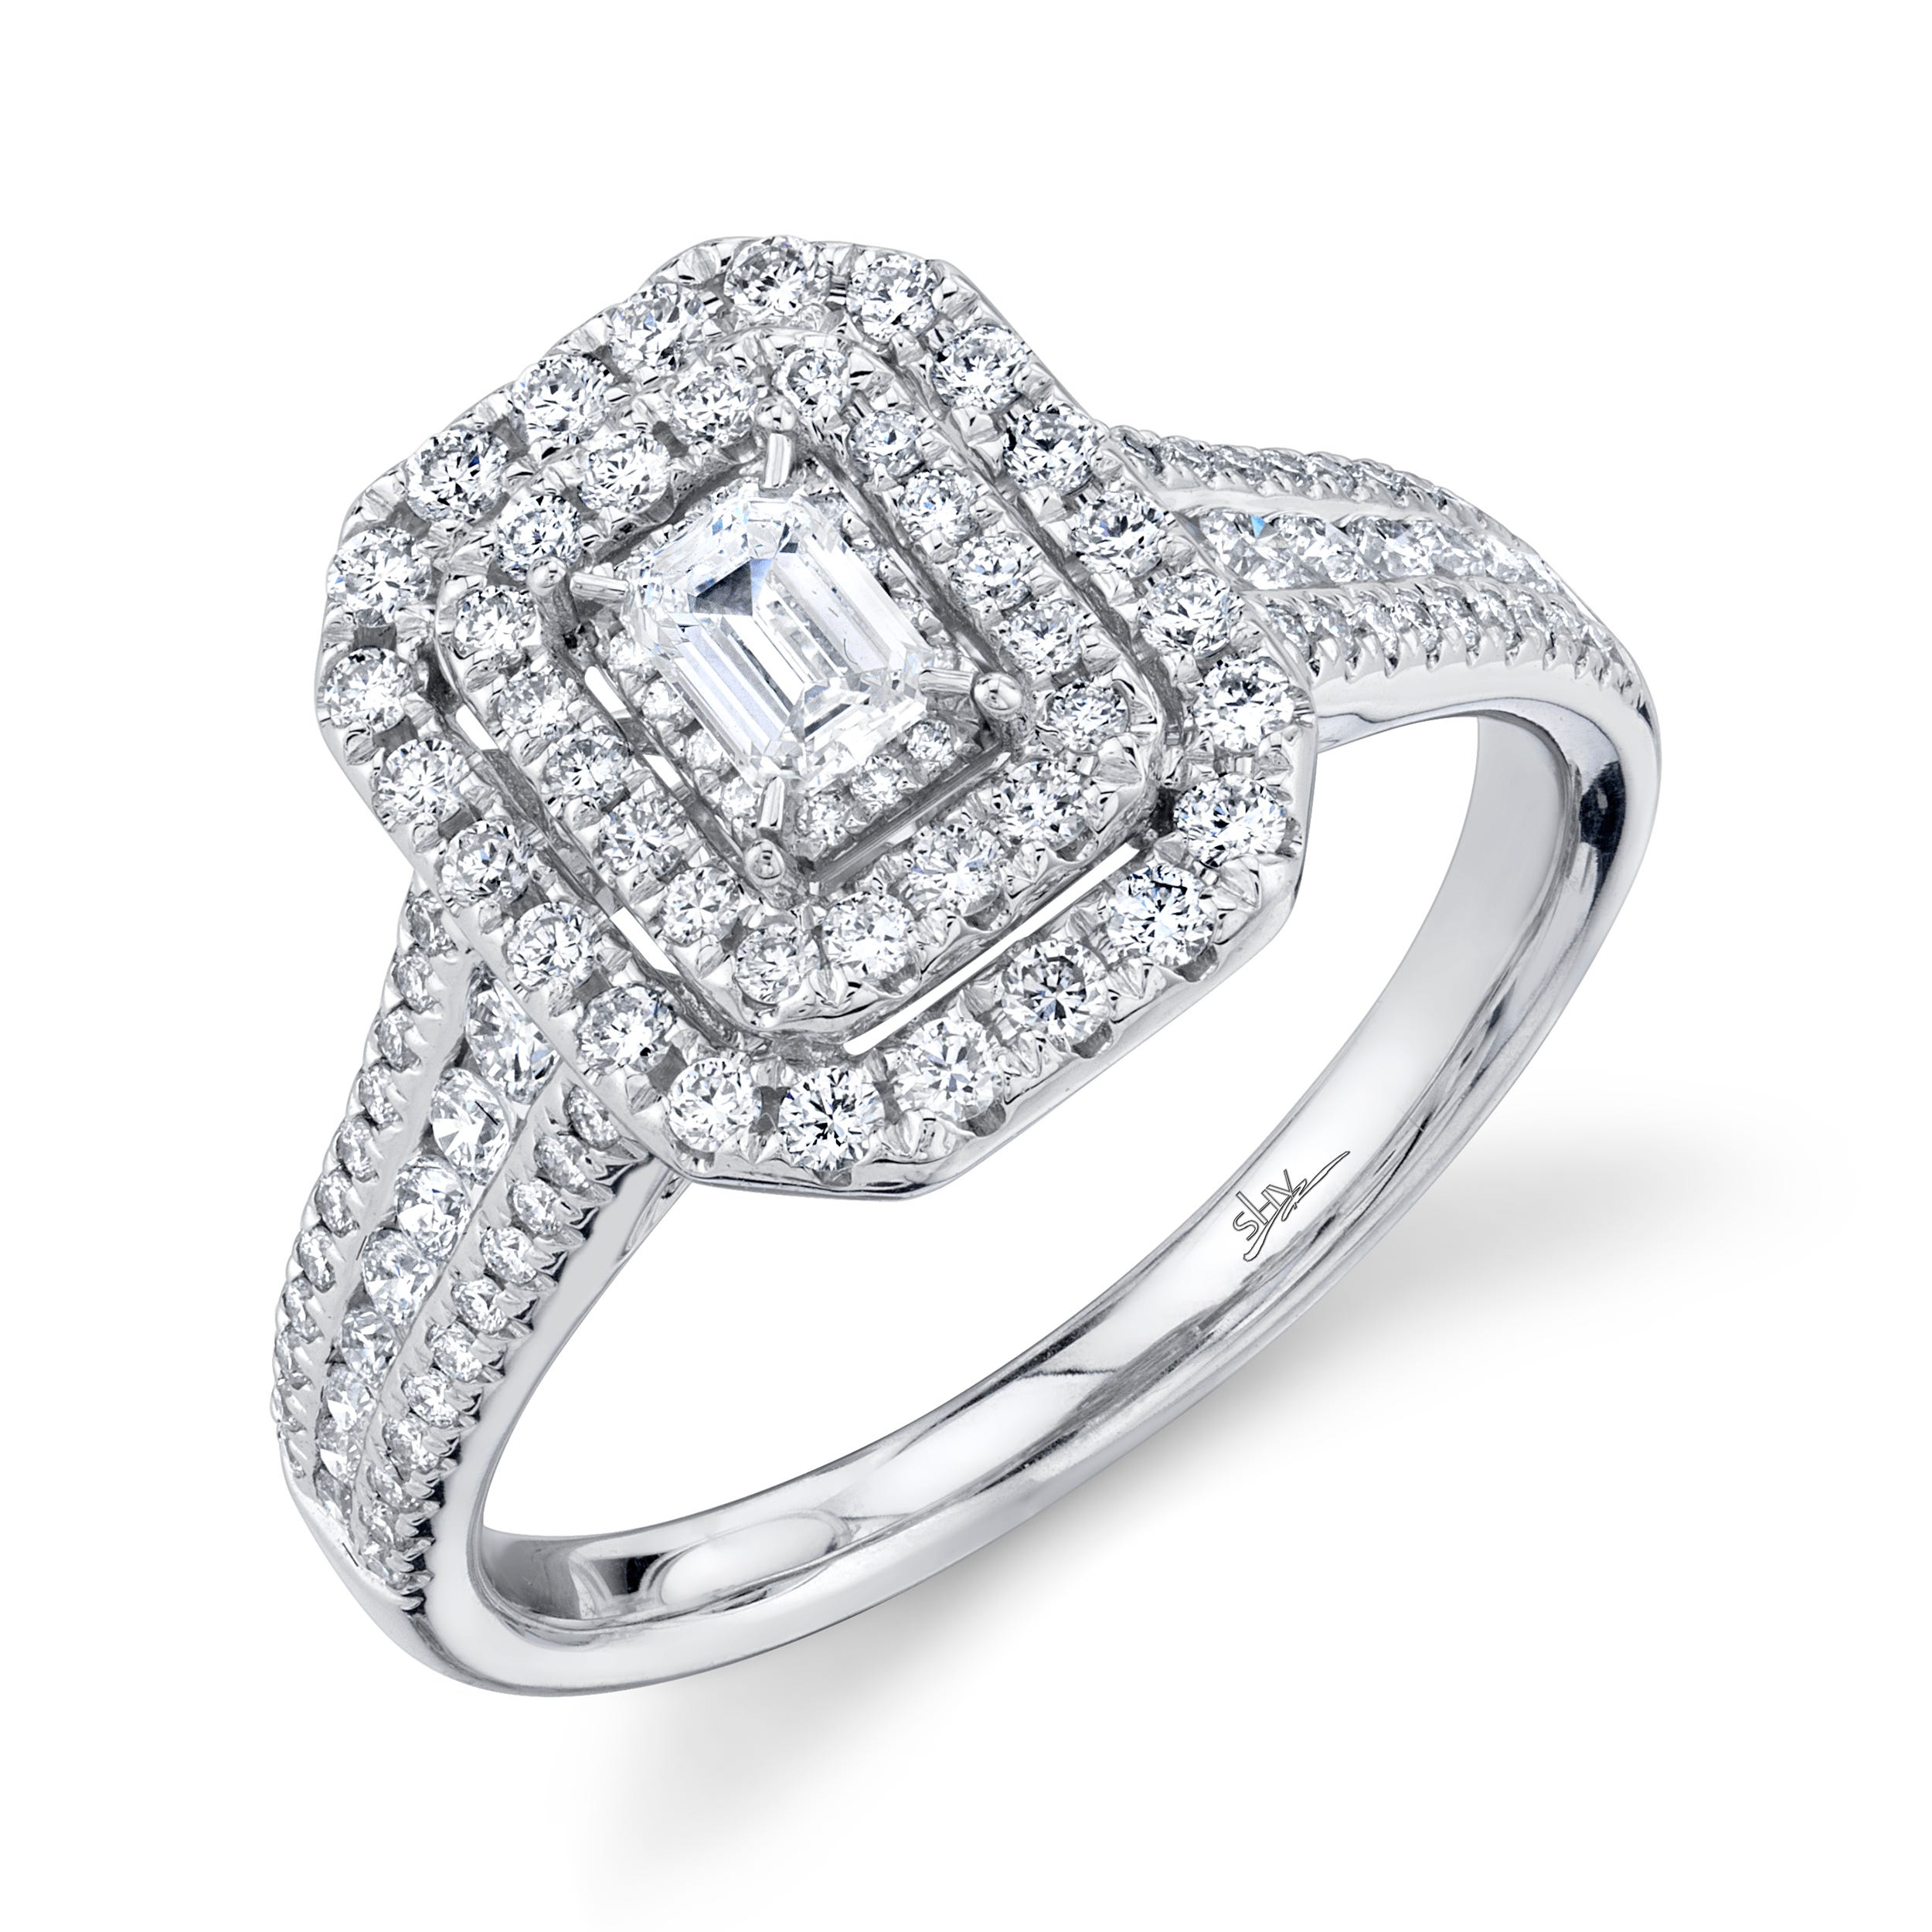 Shy Creation 3/4ctw. Emerald-Cut Diamond Double Halo Engagement Ring in 14k White Gold SC22007206